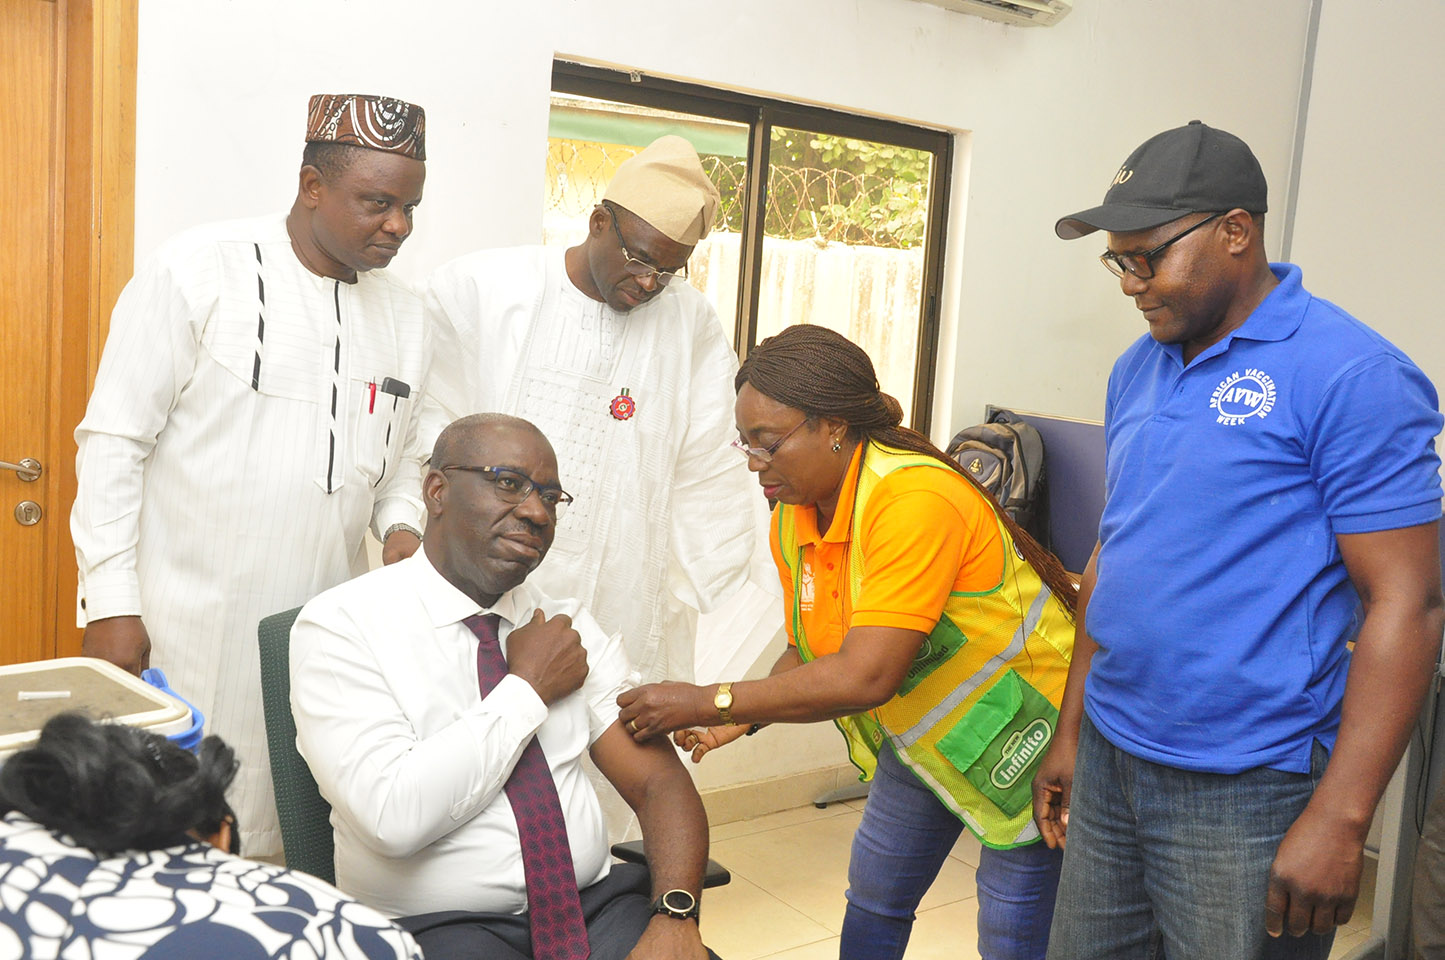 Edo State Governor, Mr. Godwin Obaseki taking a shot of the yellow fever vaccine, at the end of the weekly EXCO meeting at Government House, Benin City, Edo State. He is flanked by his deputy, Rt. Hon. Philip Shaibu (back row, right); and Commissioner for Health, Dr. David Osifo.